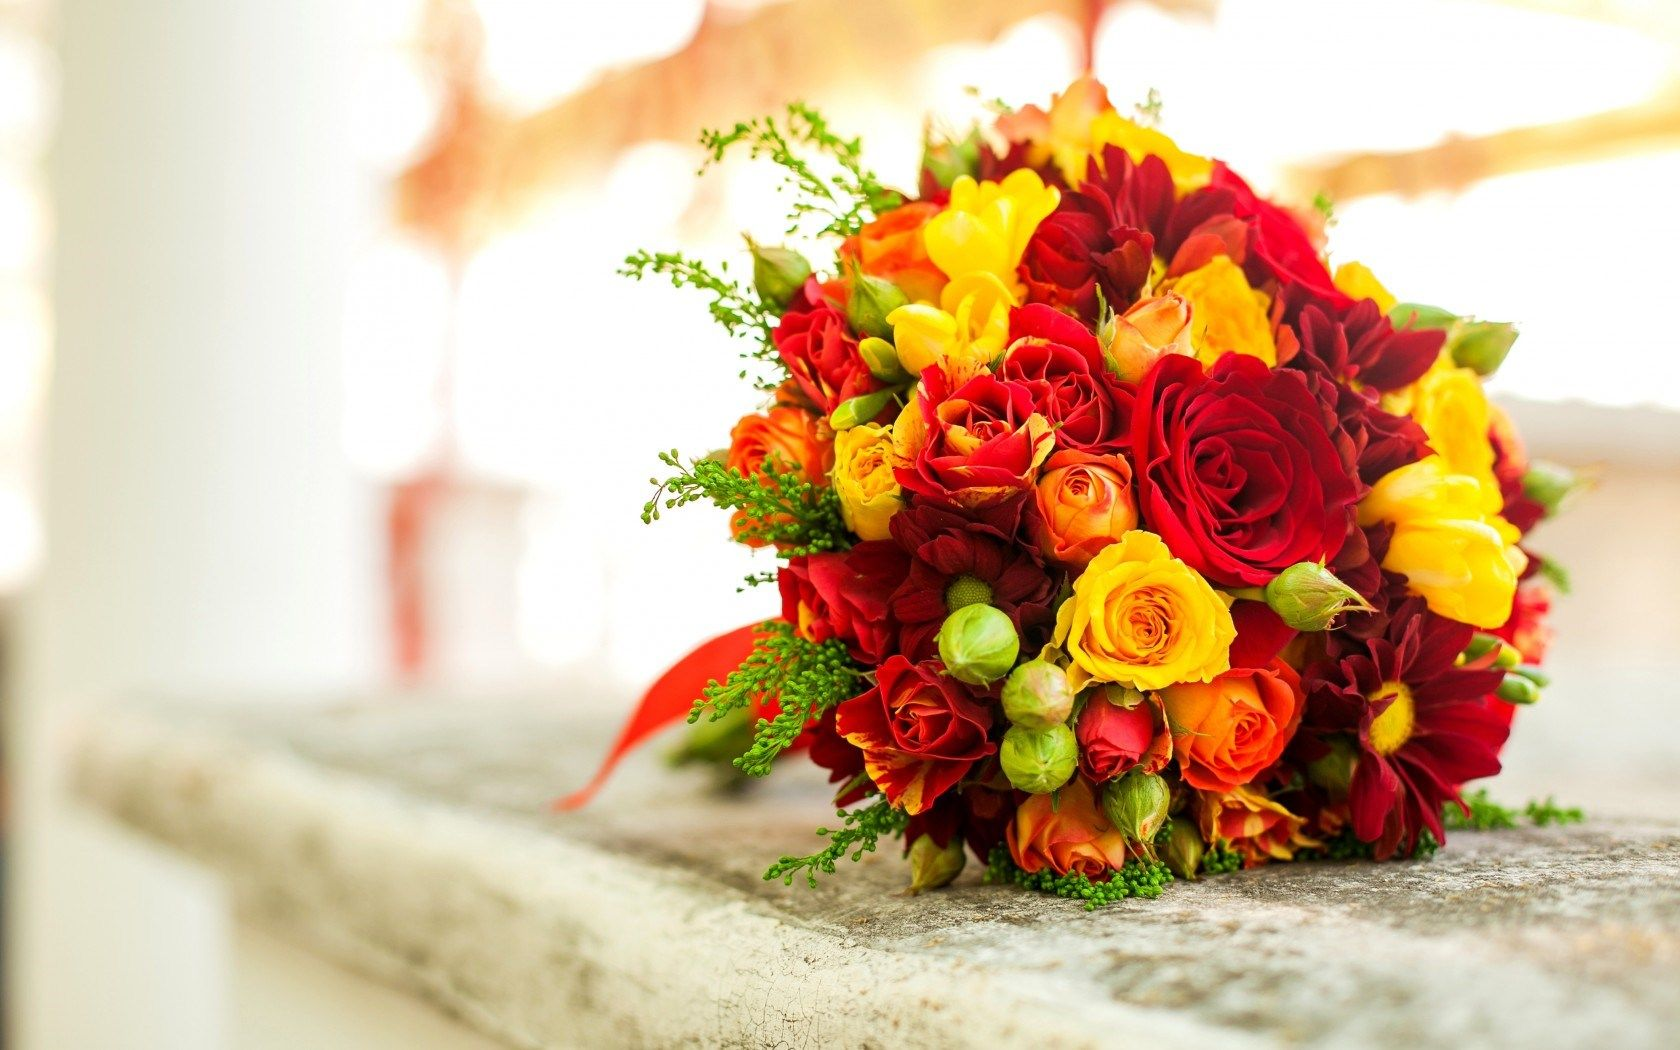 Tell Your Sweetheart How Precious She Is And Bloom Your Love Into